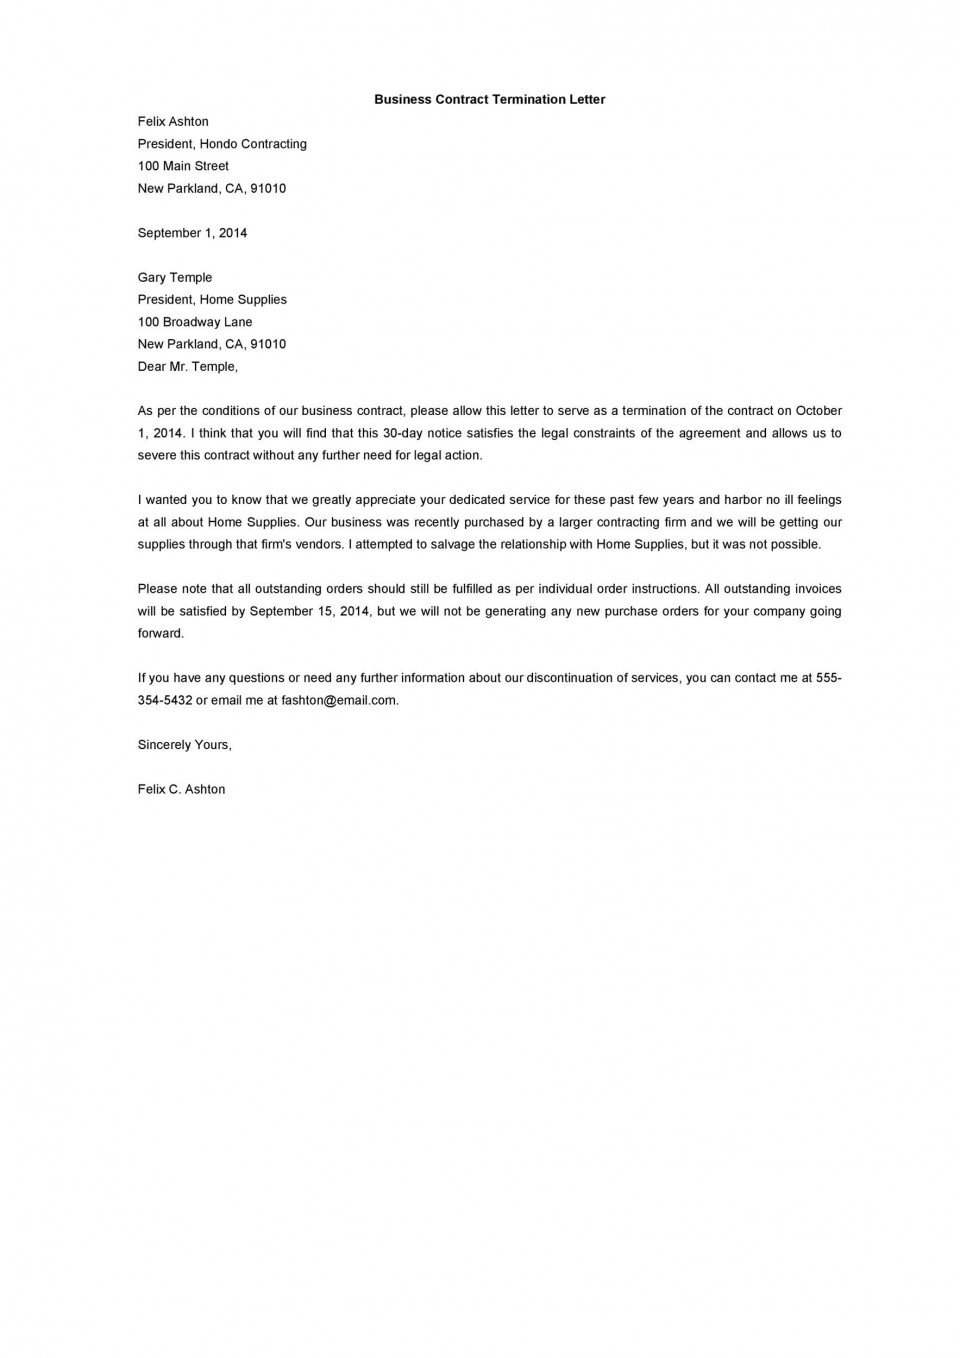 009 Fantastic Template For Terminating A Lease Agreement Photo  Rental Sample Letter960